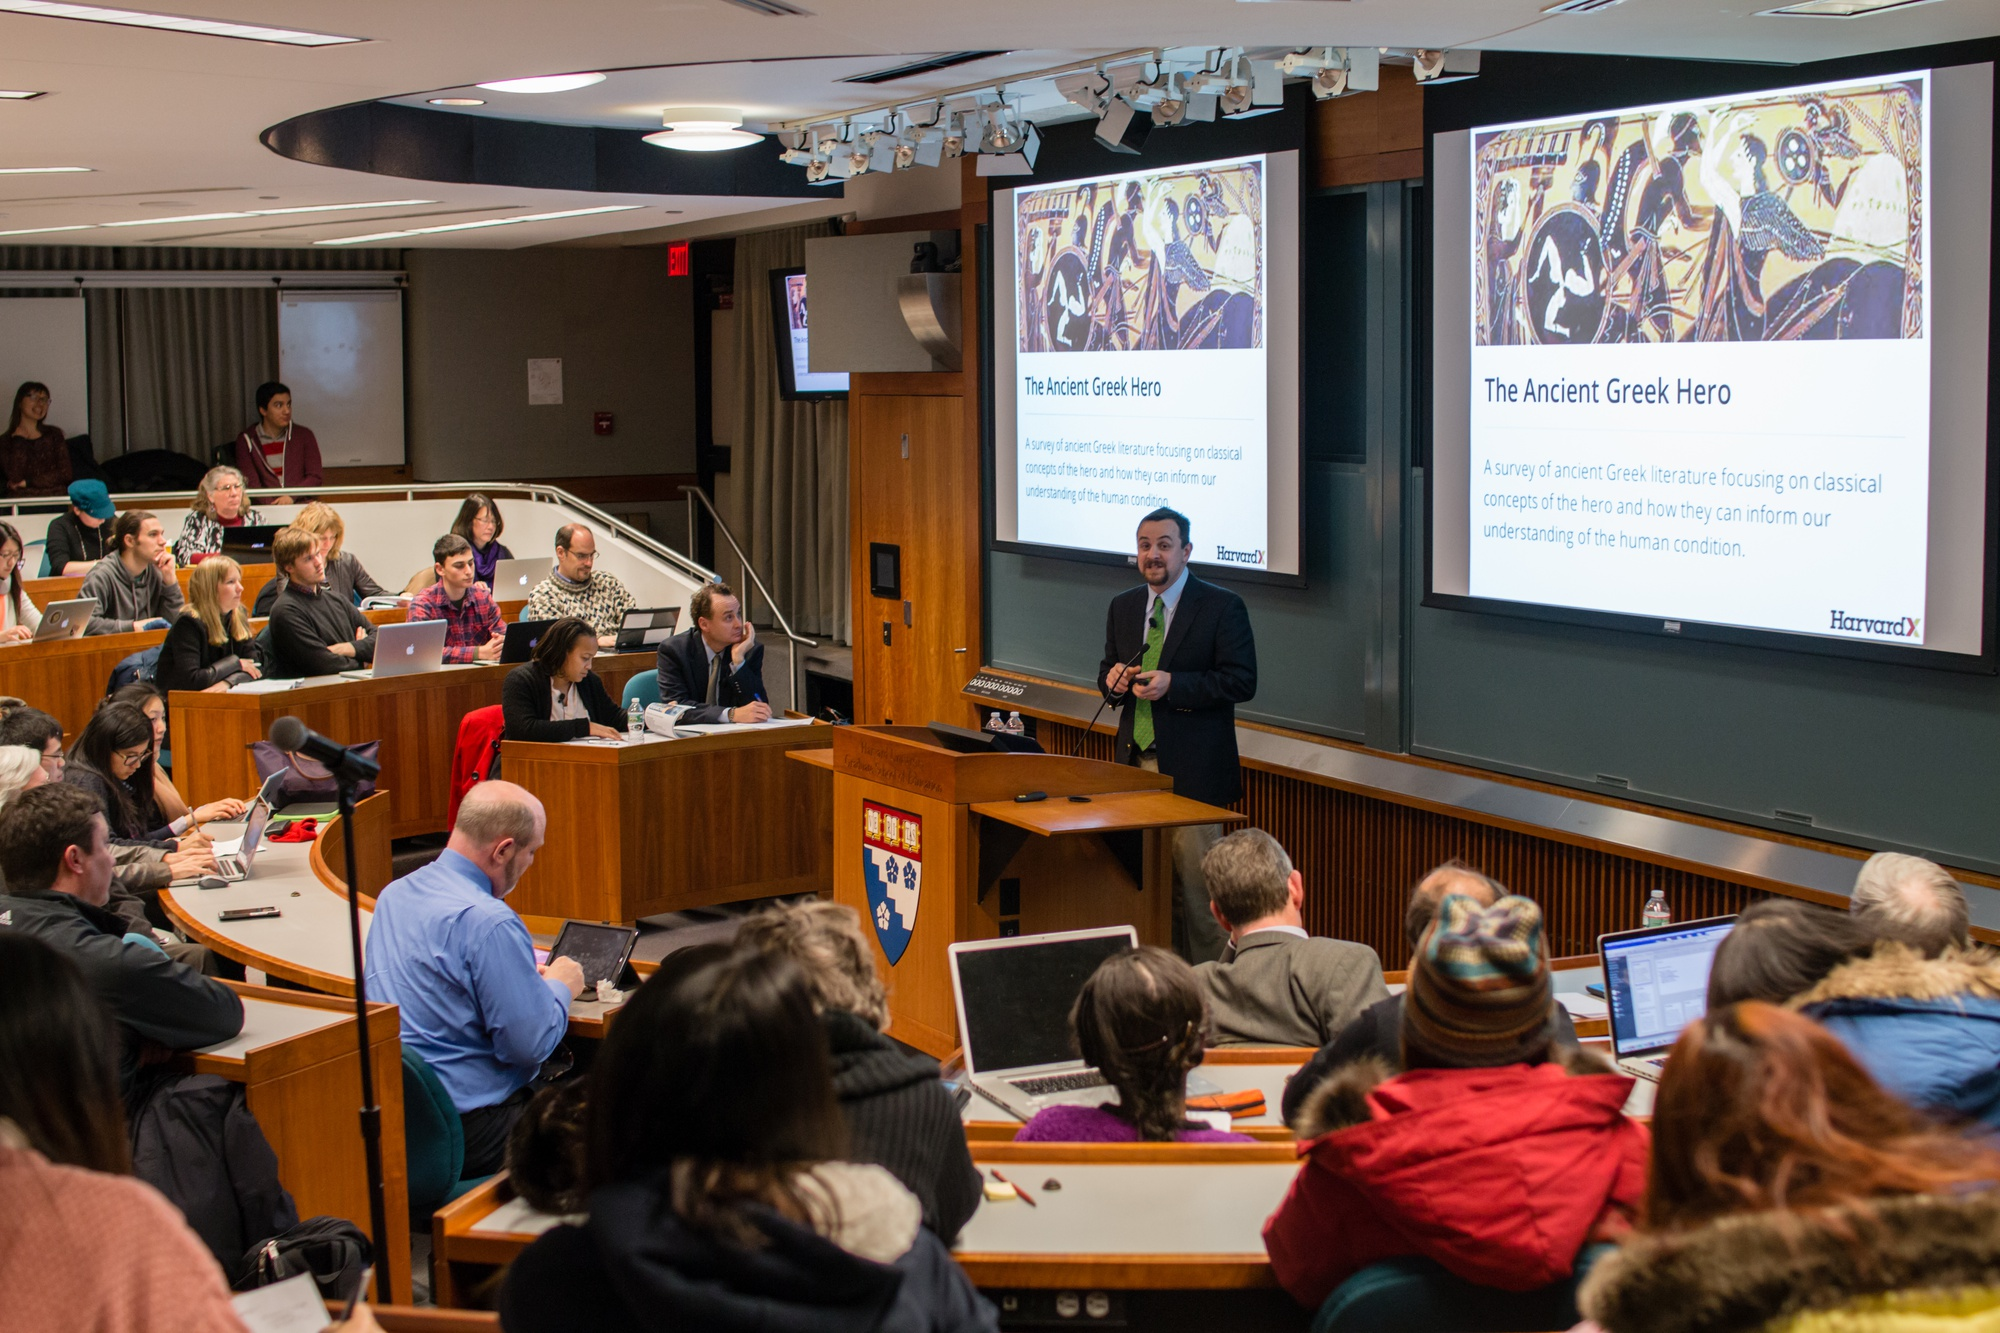 Justin Reich, HarvardX Research Fellow, briefly describes the HeroesX curriculum as an introduction to the findings discovered by analyzing the behavior of registered users of HarvardX courses. The HarvardX Research Presentation occurred on January 21 at Larsen Hall.